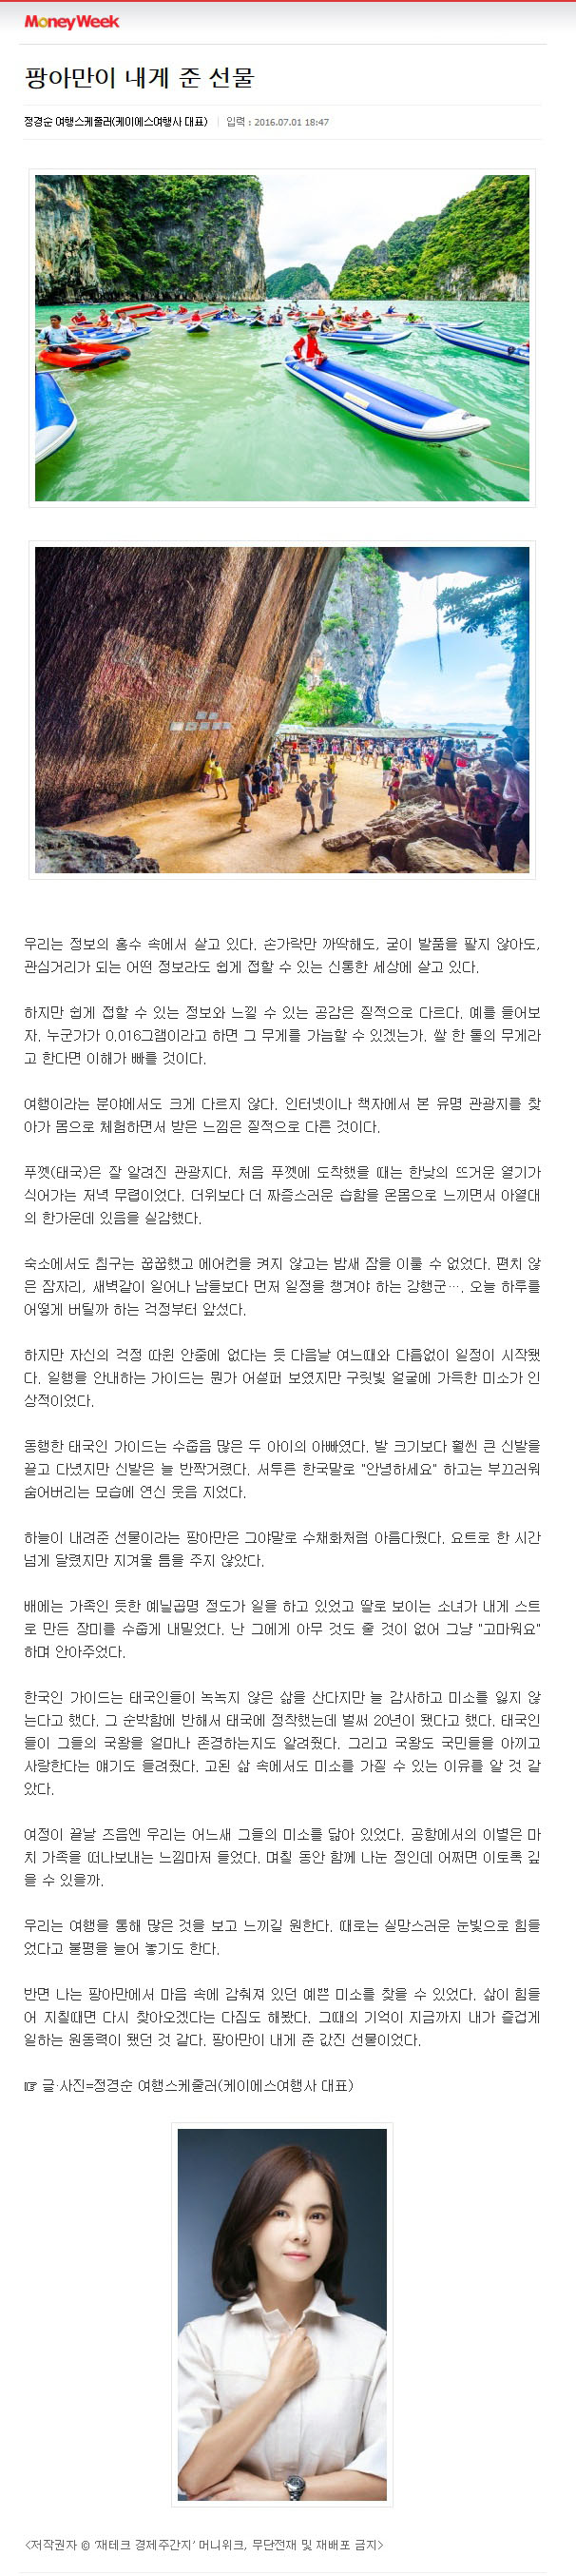 moneyweek-160701.jpg